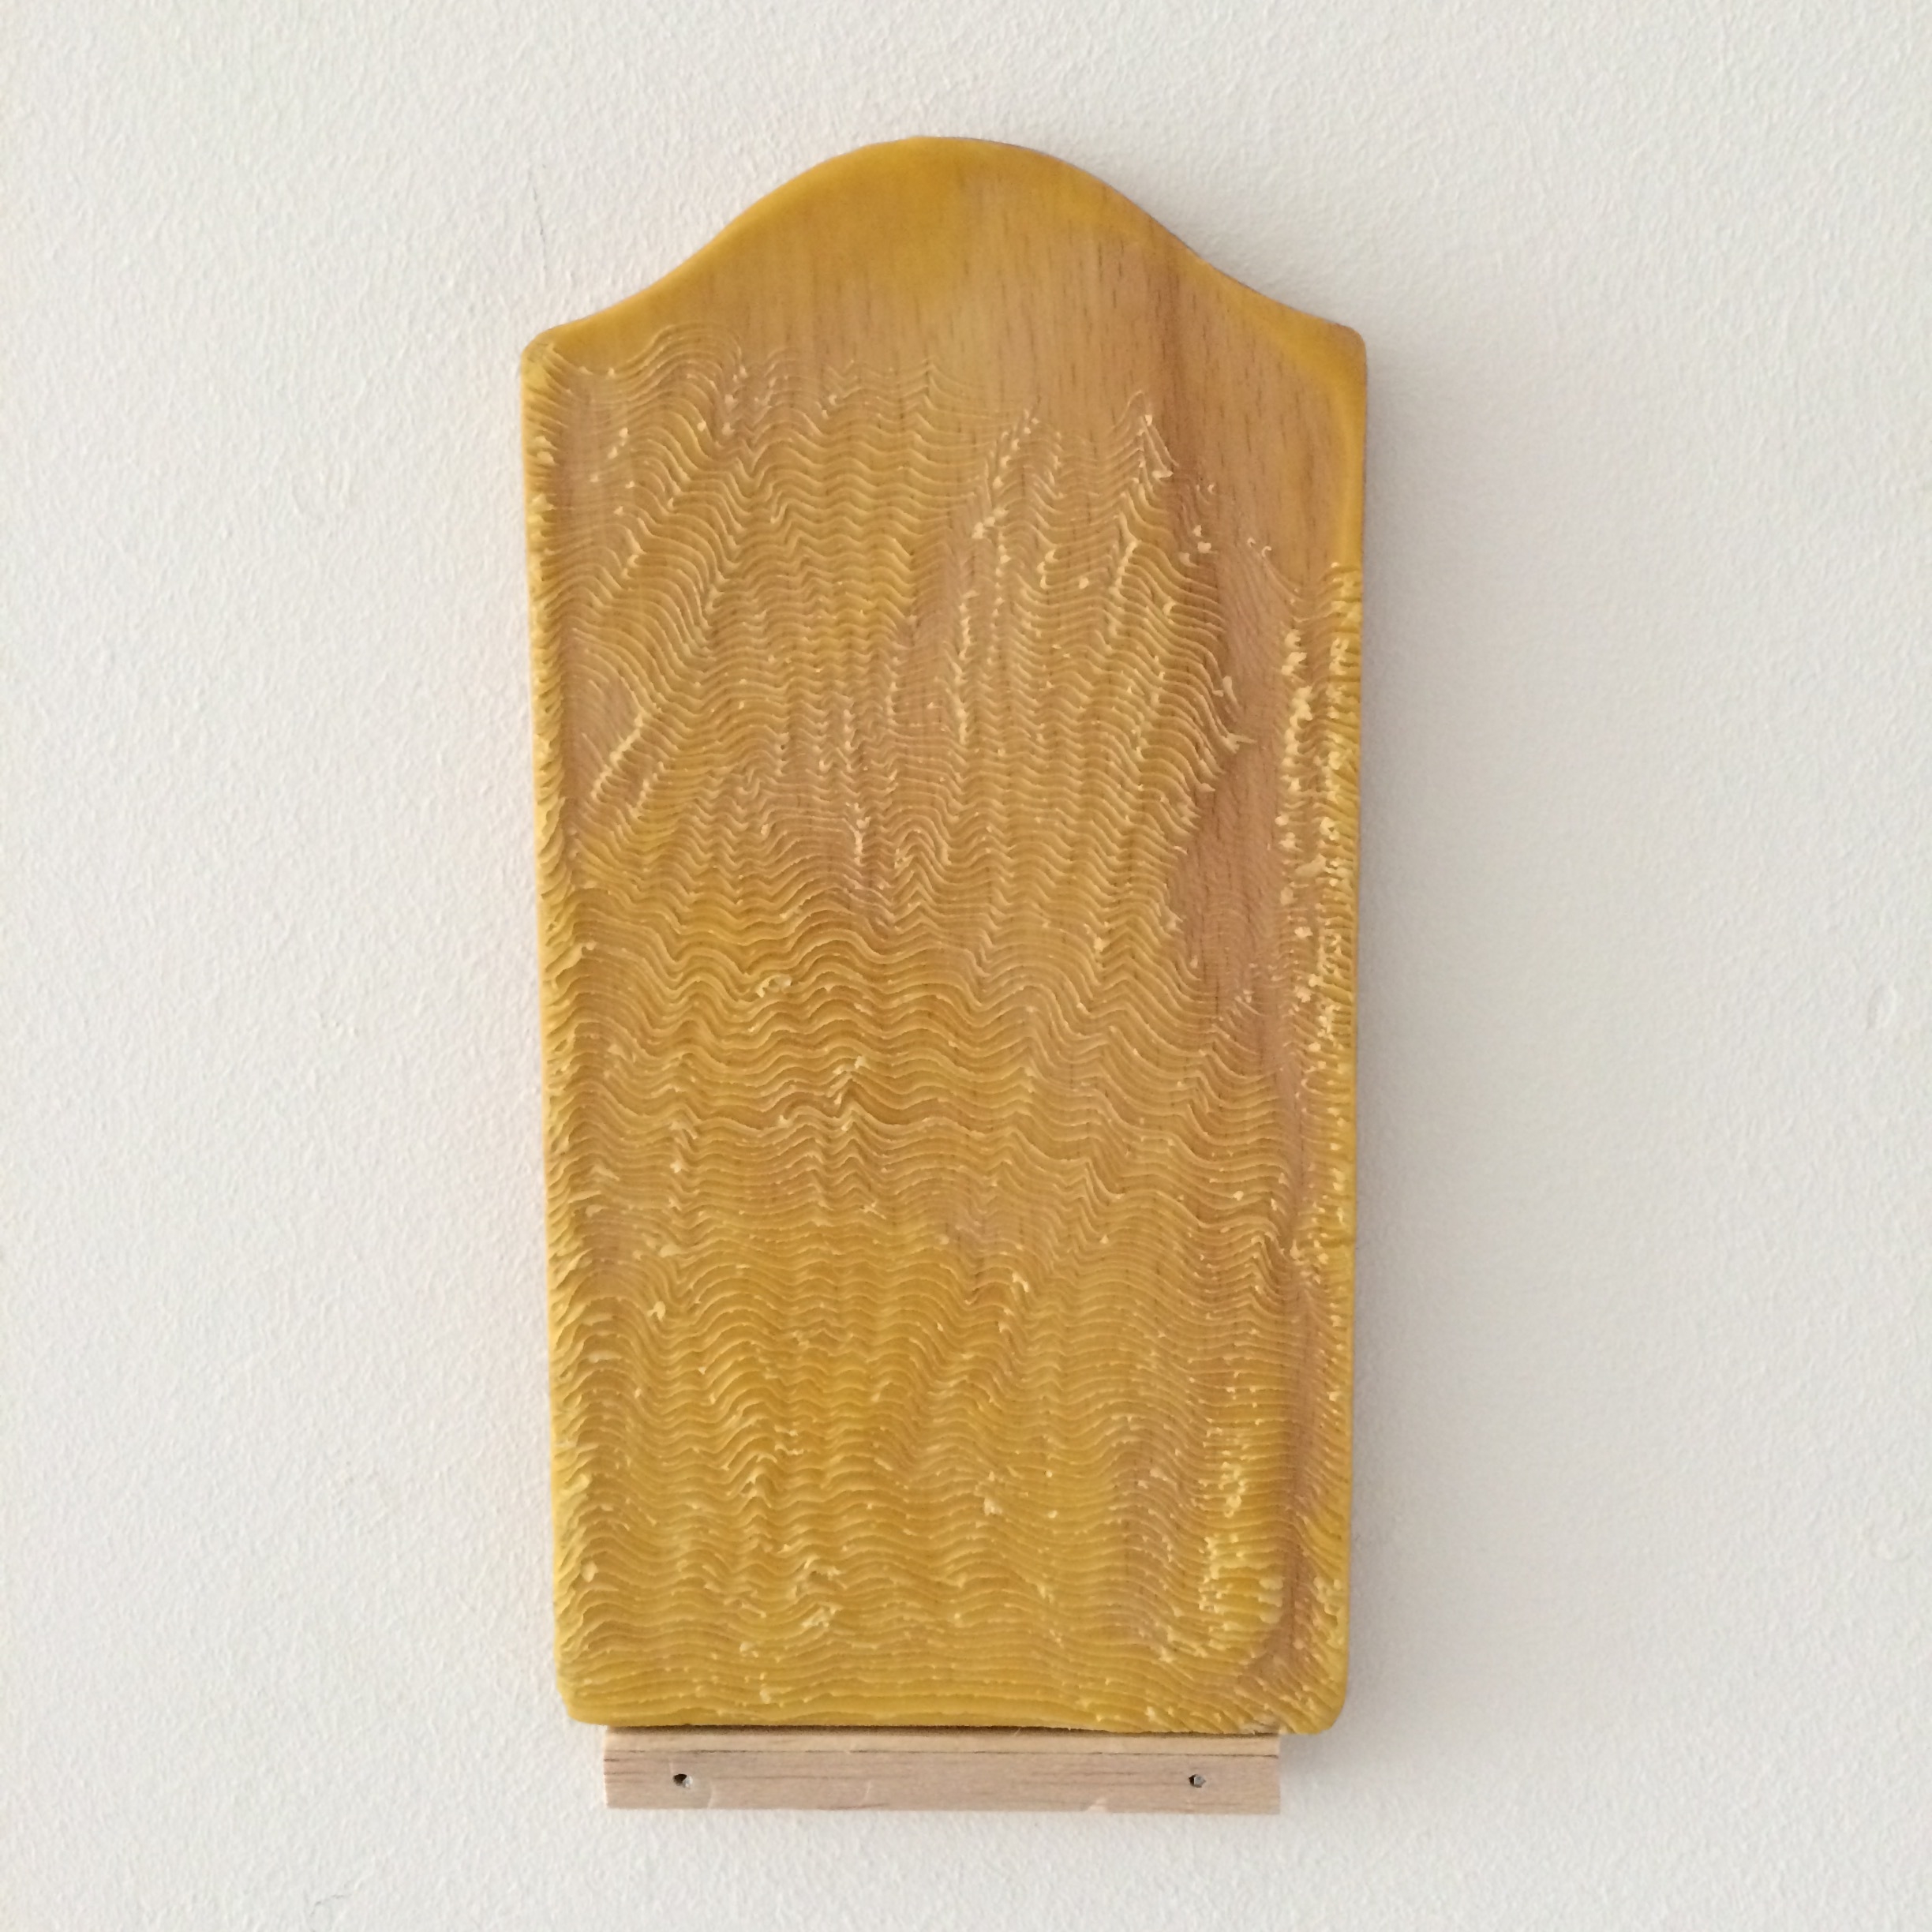 Altar , 2016, Beeswax, cutting board (wood).